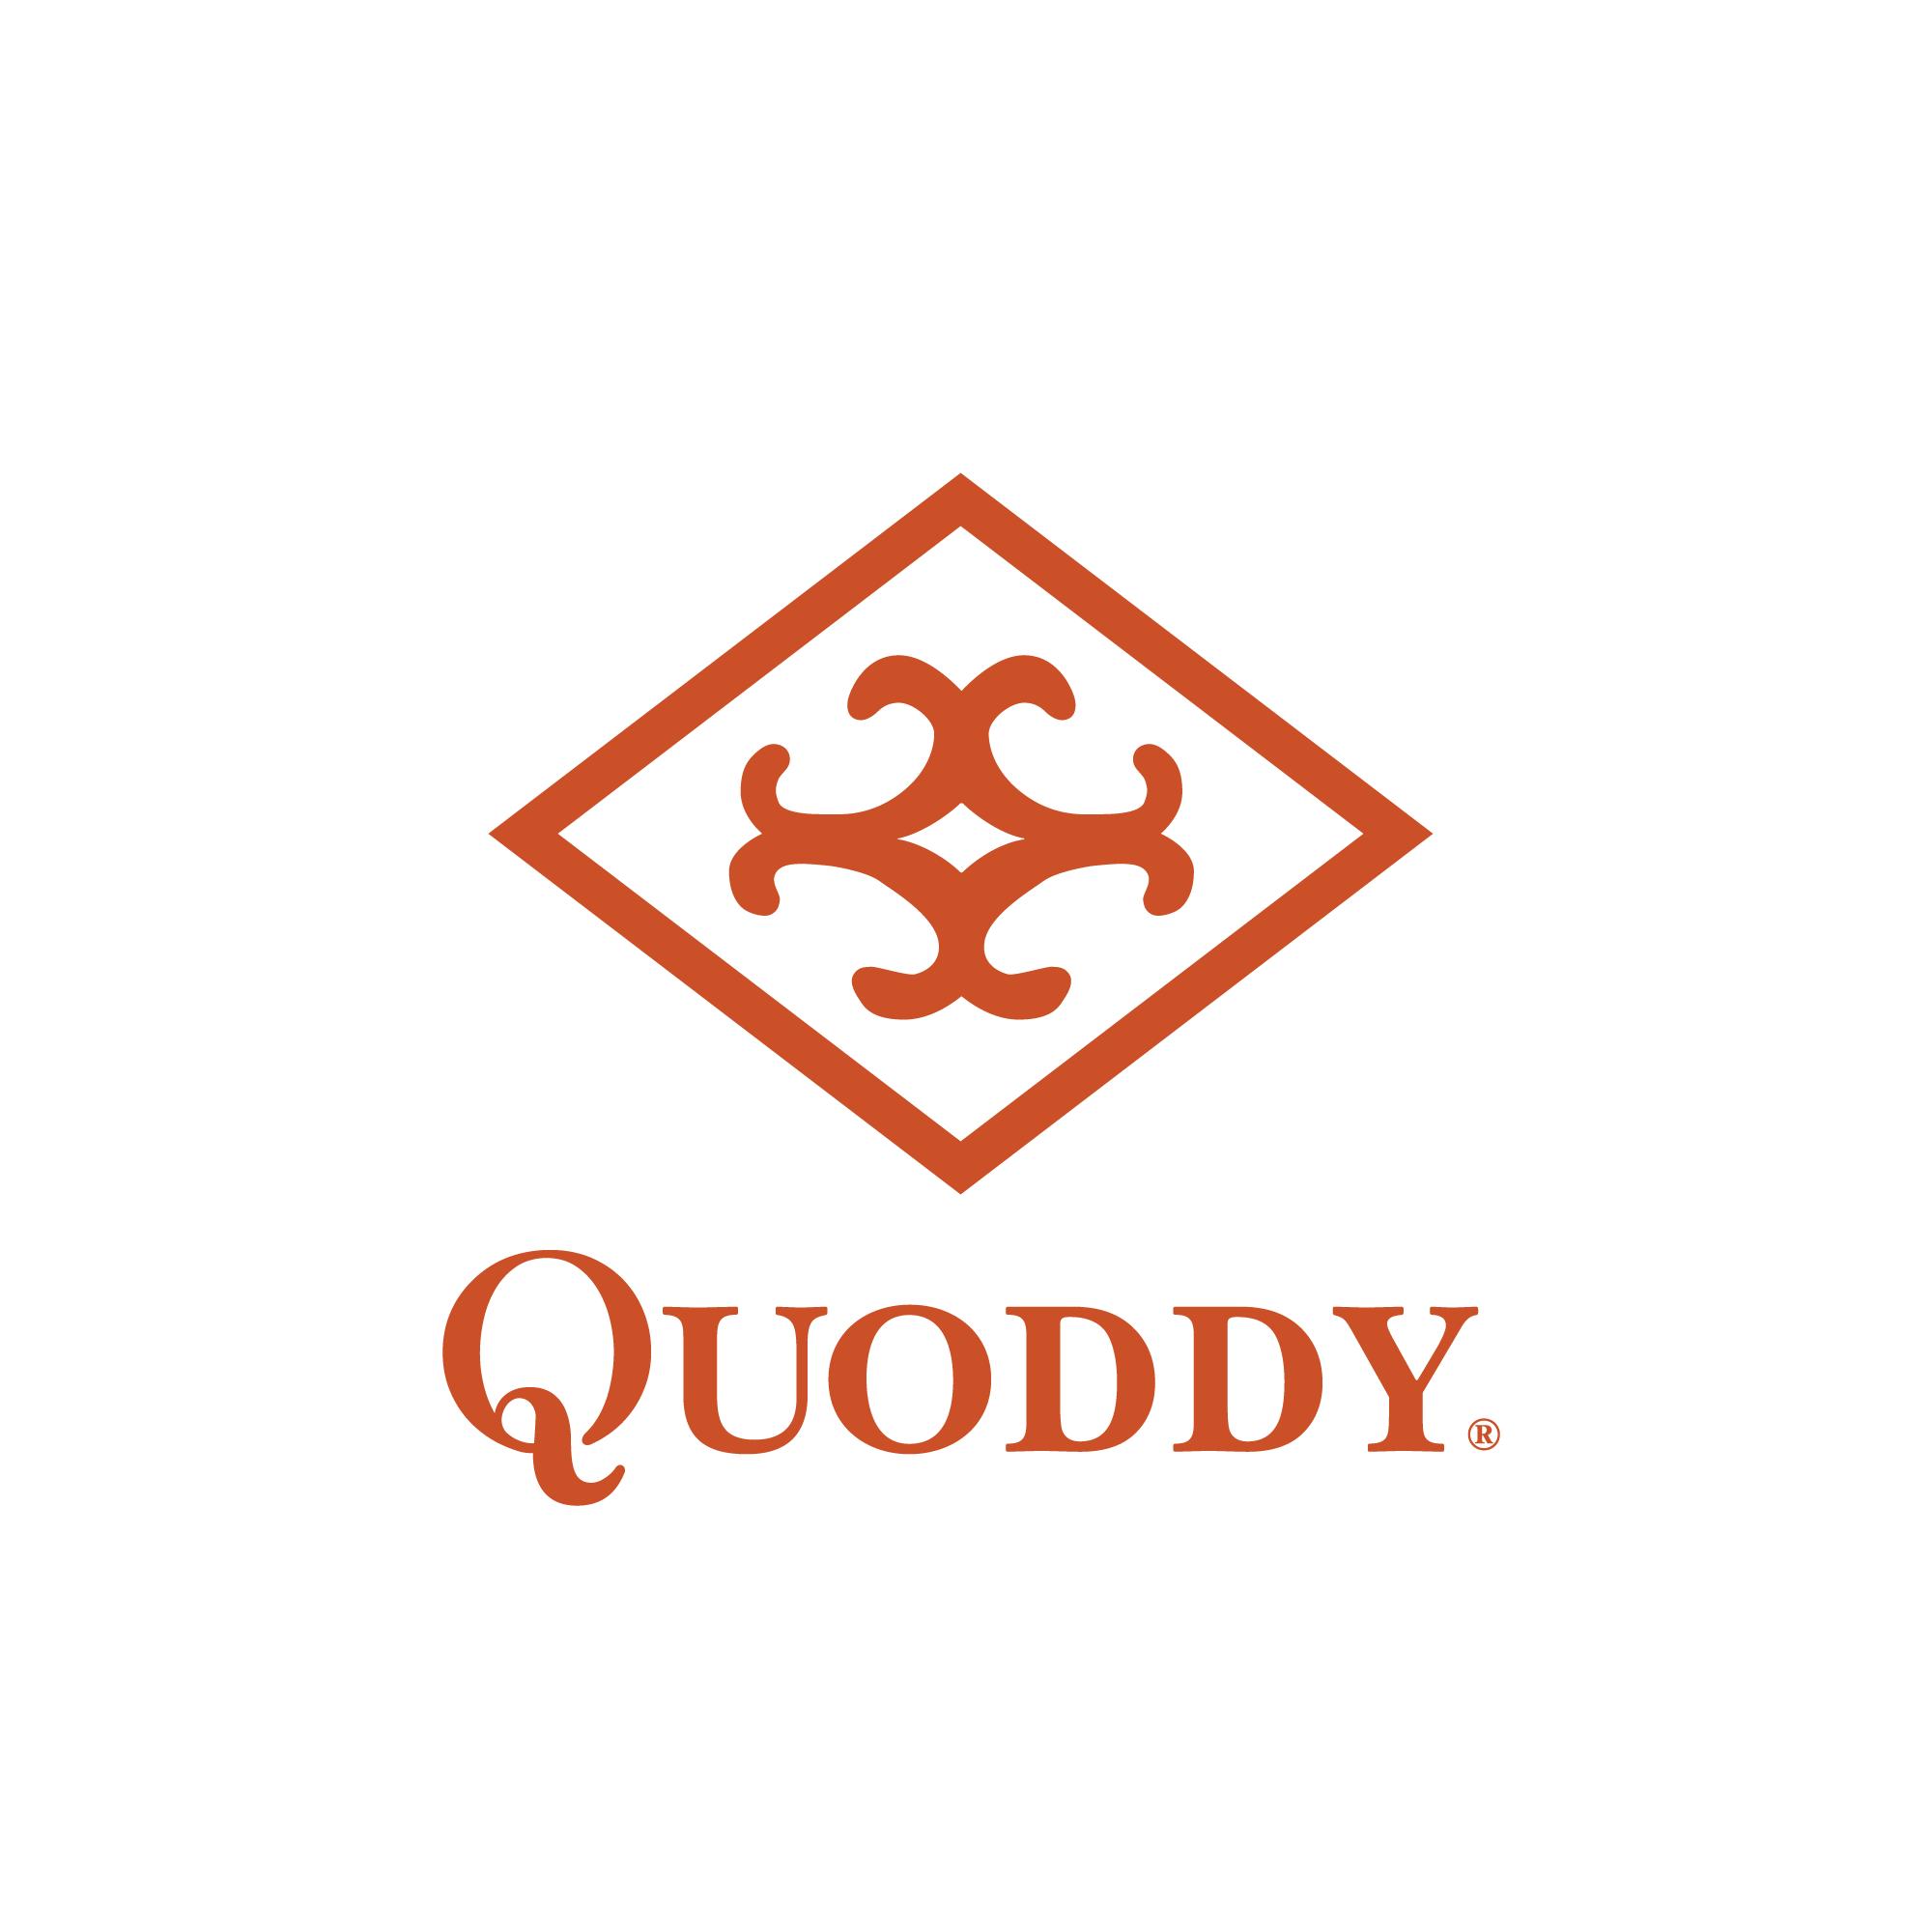 quoddy.png